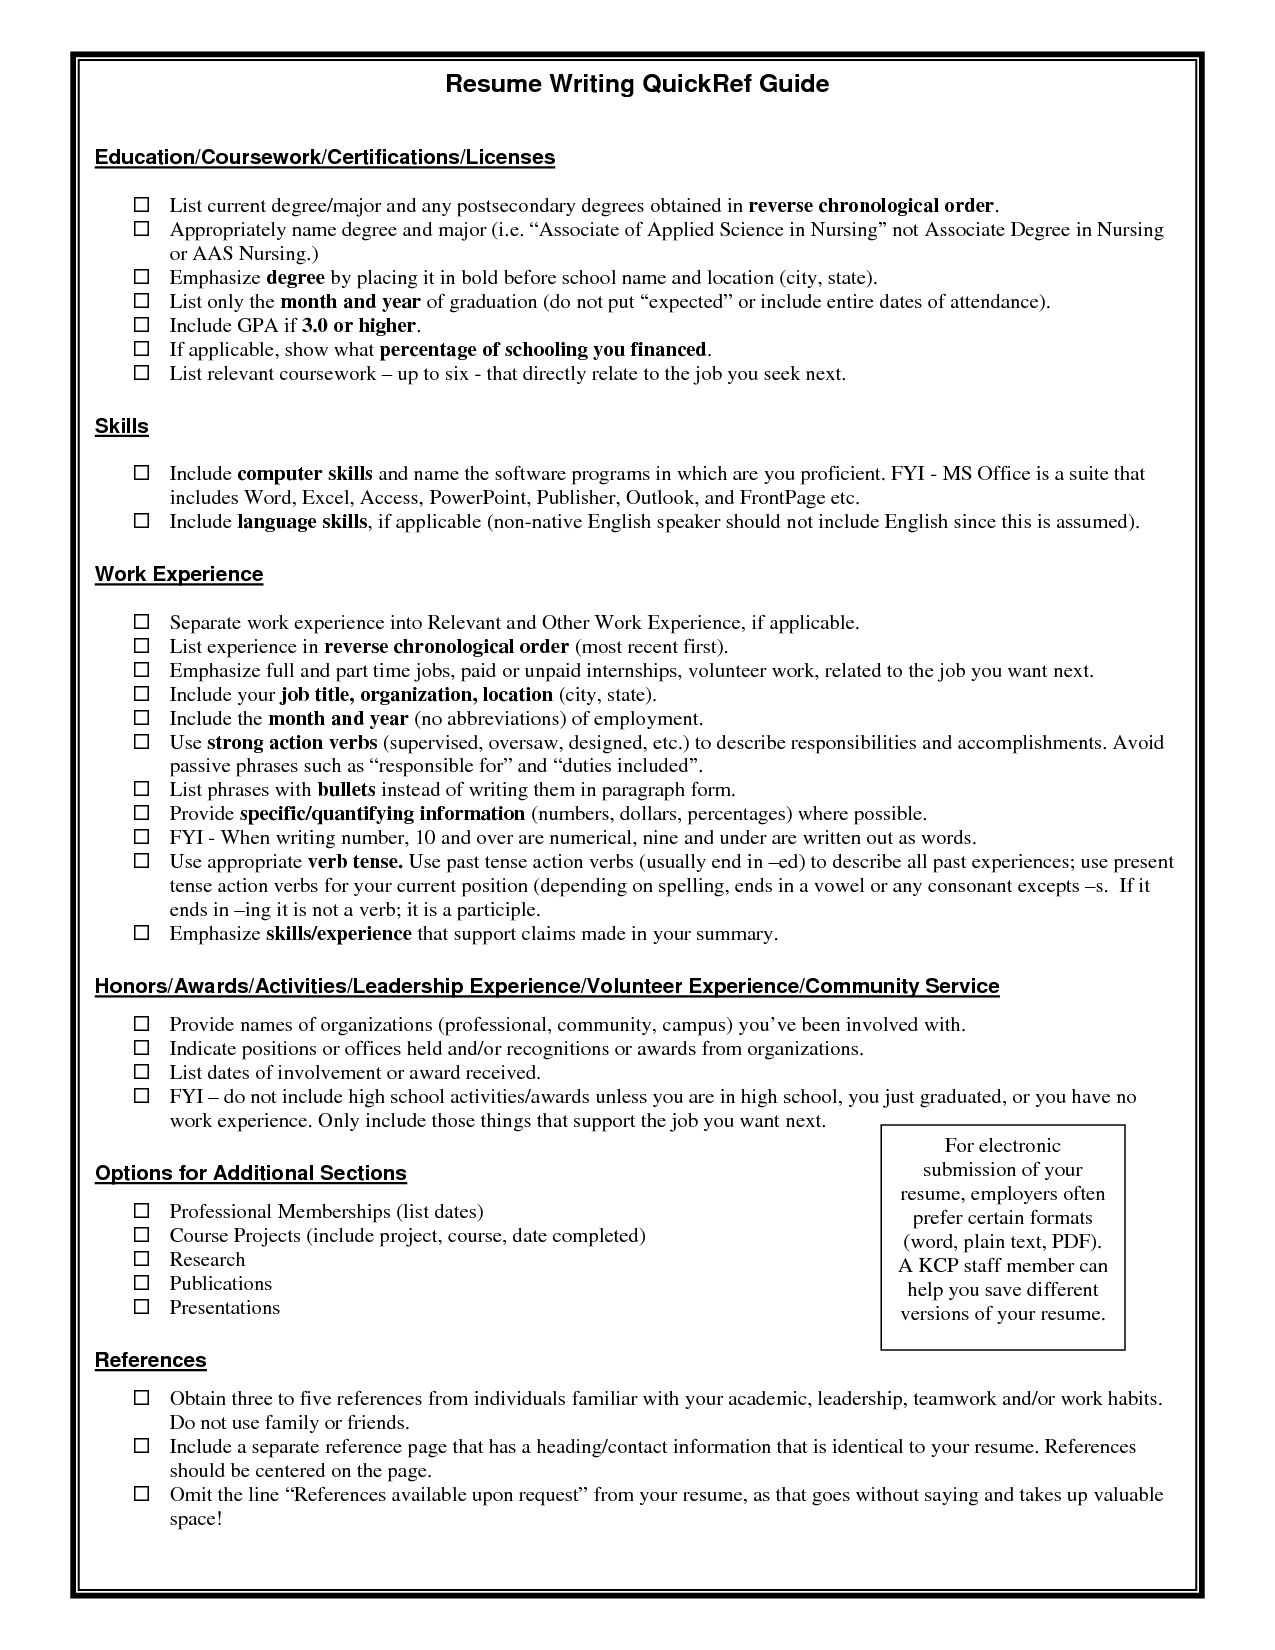 pin on things want resume and certifications professional athlete sample delivery Resume Resume And Certifications